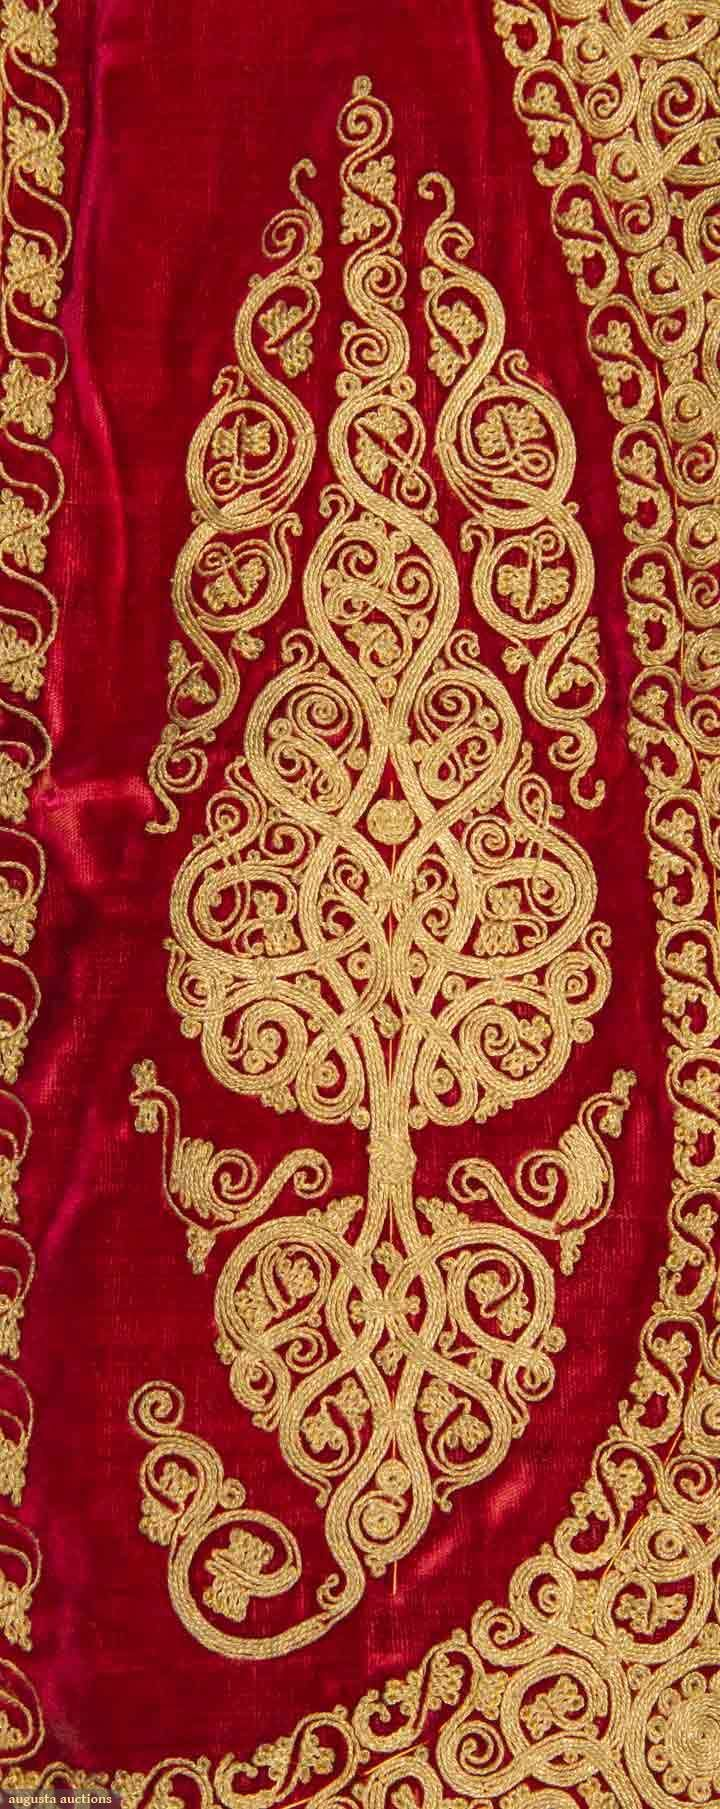 Couched gold threadwork on a jacket from Albania, 1840-1899.